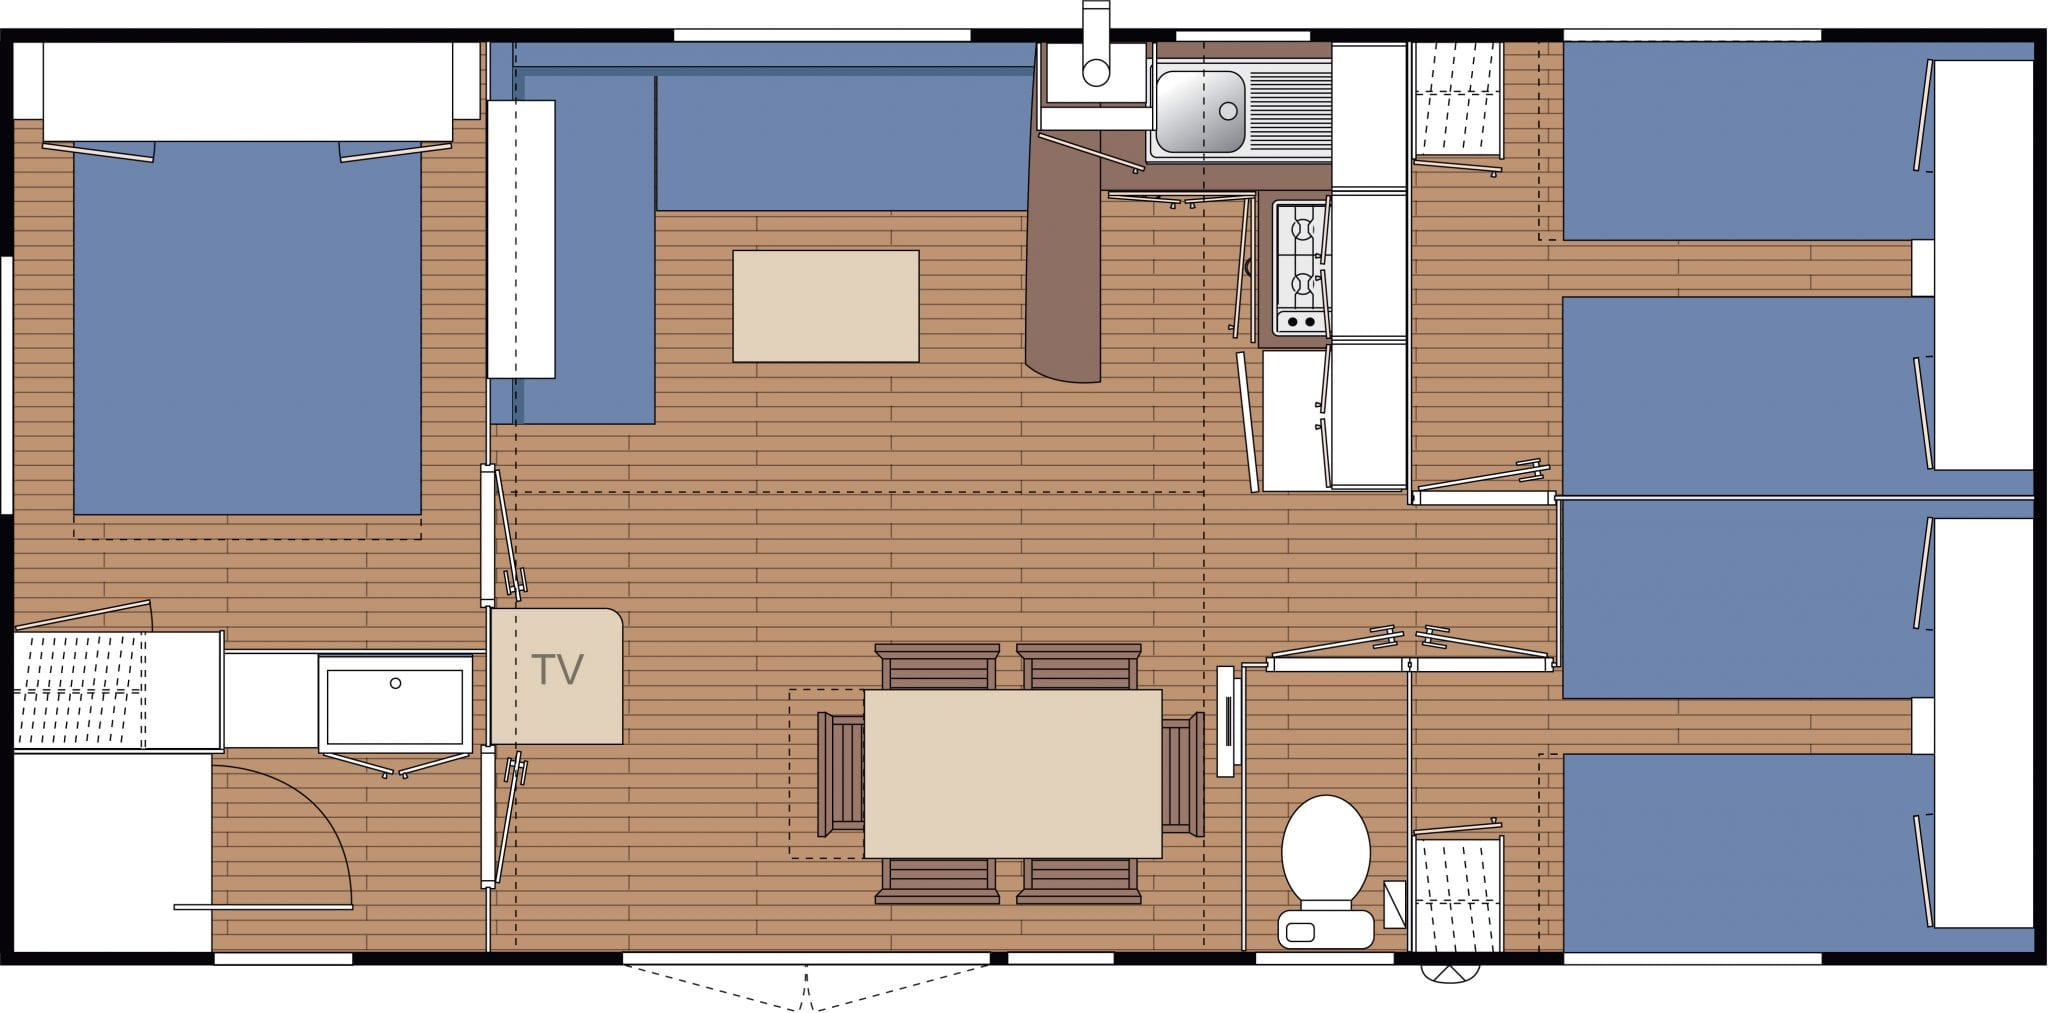 Ohara 8.34 830 - 2006 - Mobil home d'occasion - 8 500€ - Zen Mobil home